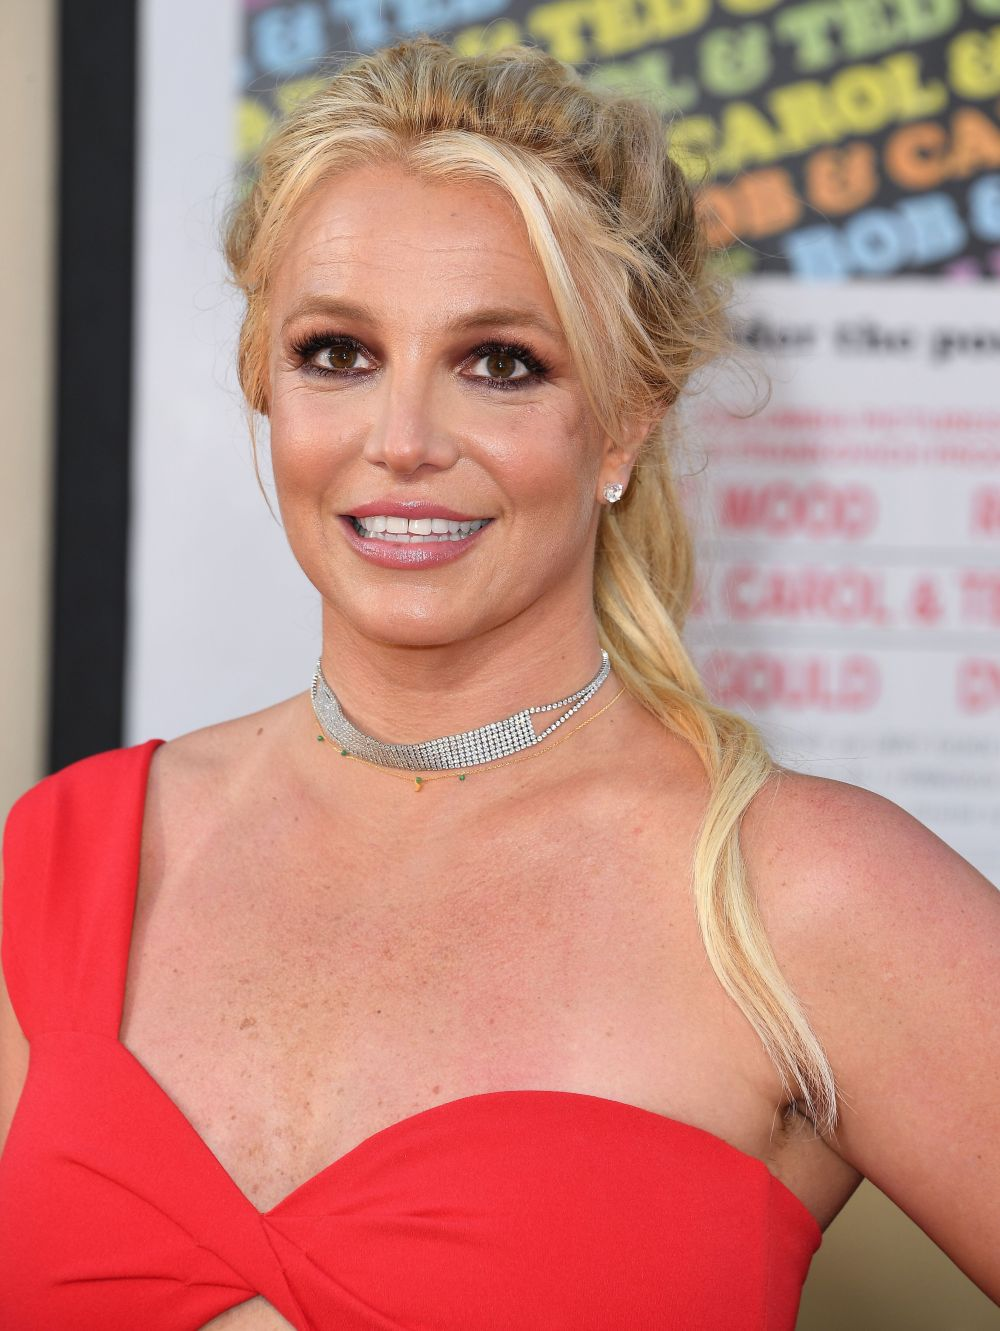 Britney Spears Slams Documentaries About Her Life